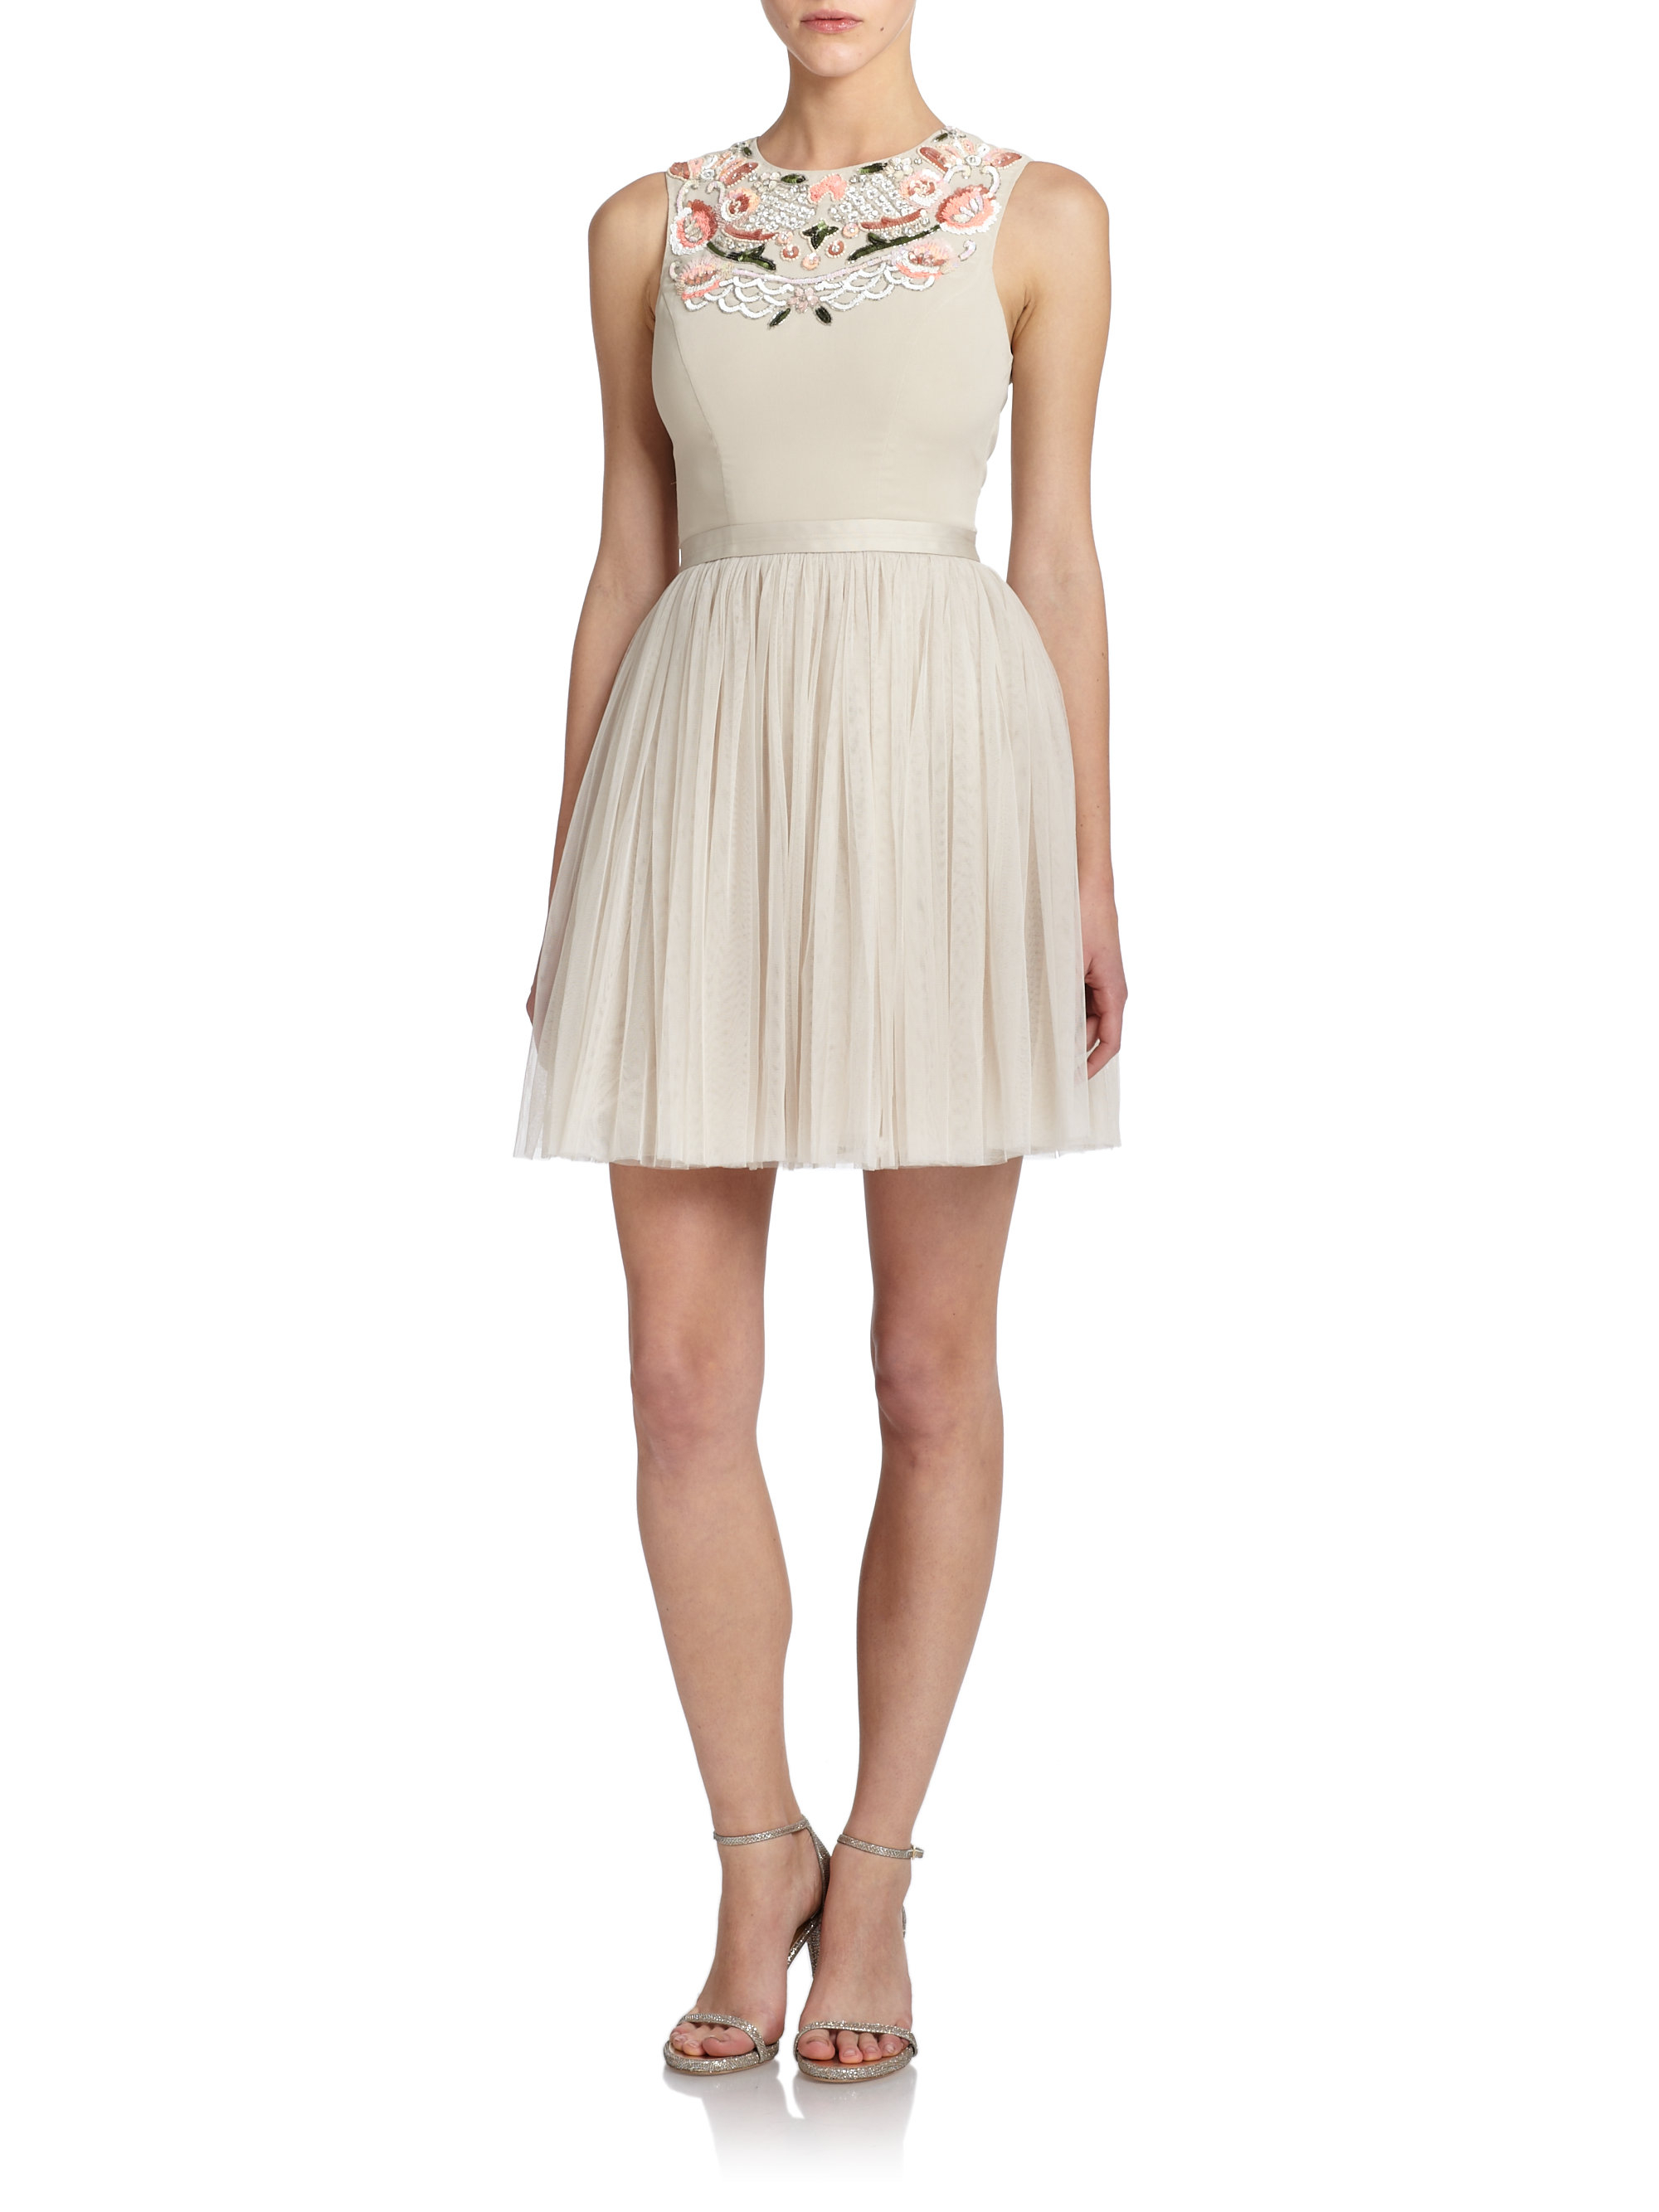 Needle Amp Thread Embroidered Fit And Flare Dress In Pink Lyst